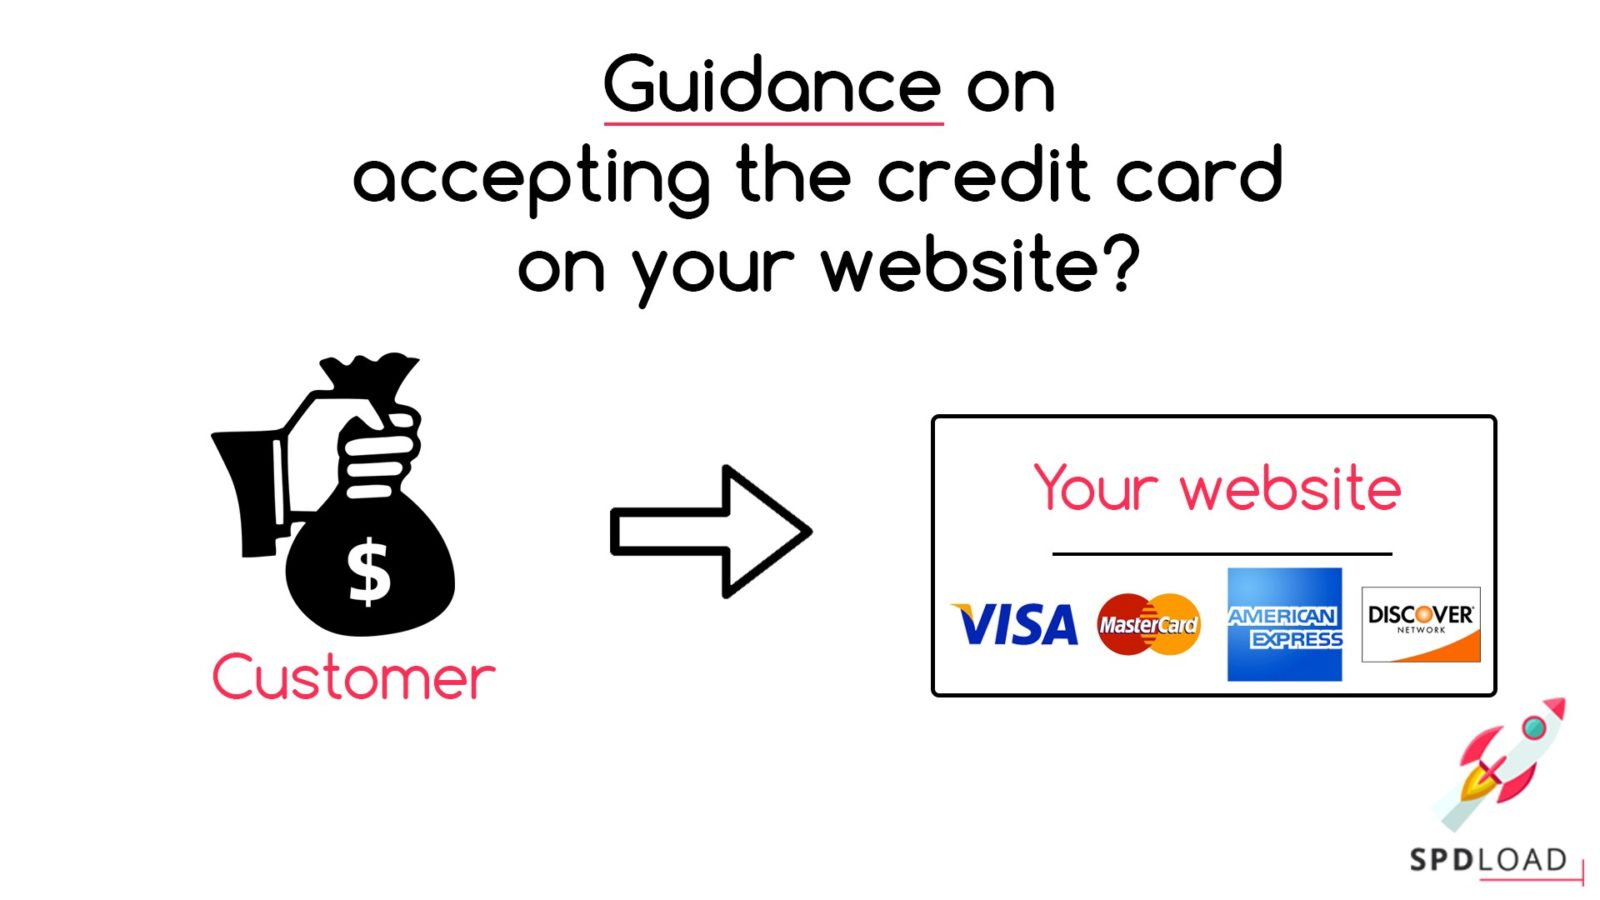 guidance to accepting credit card on your website